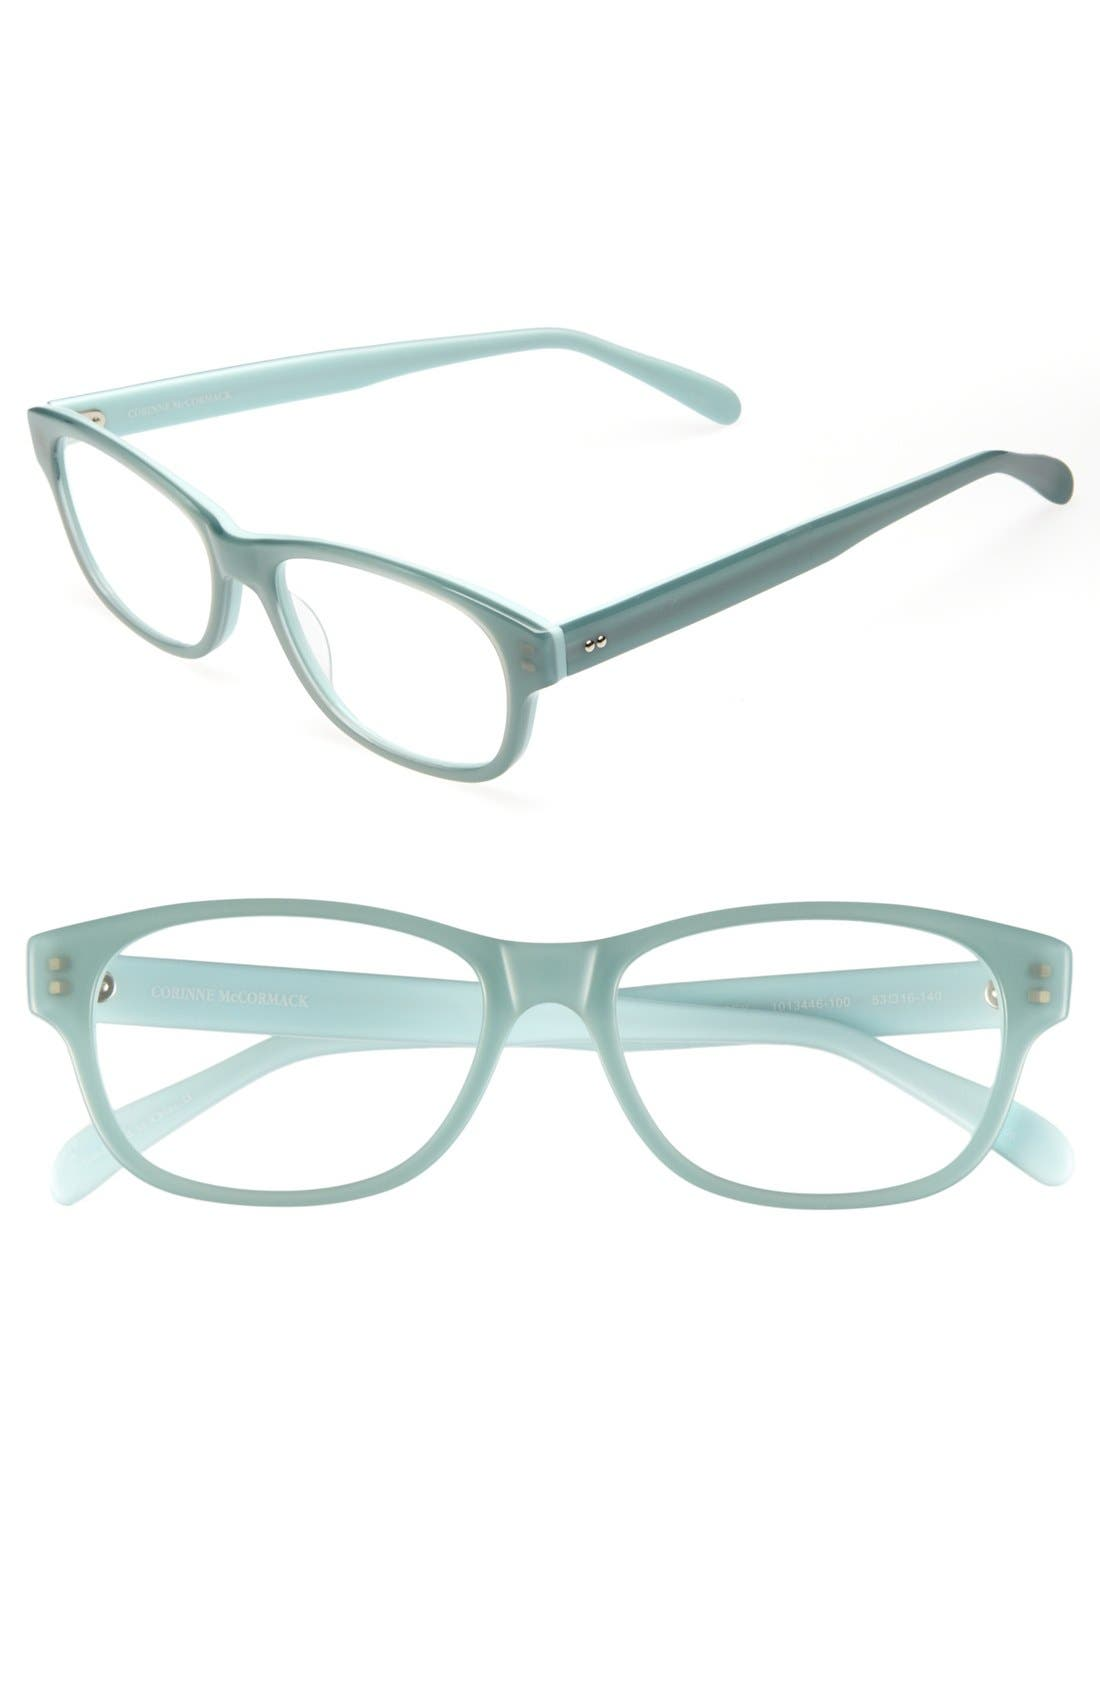 Alternate Image 1 Selected - Corinne McCormack 'Zooey' 53mm Reading Glasses